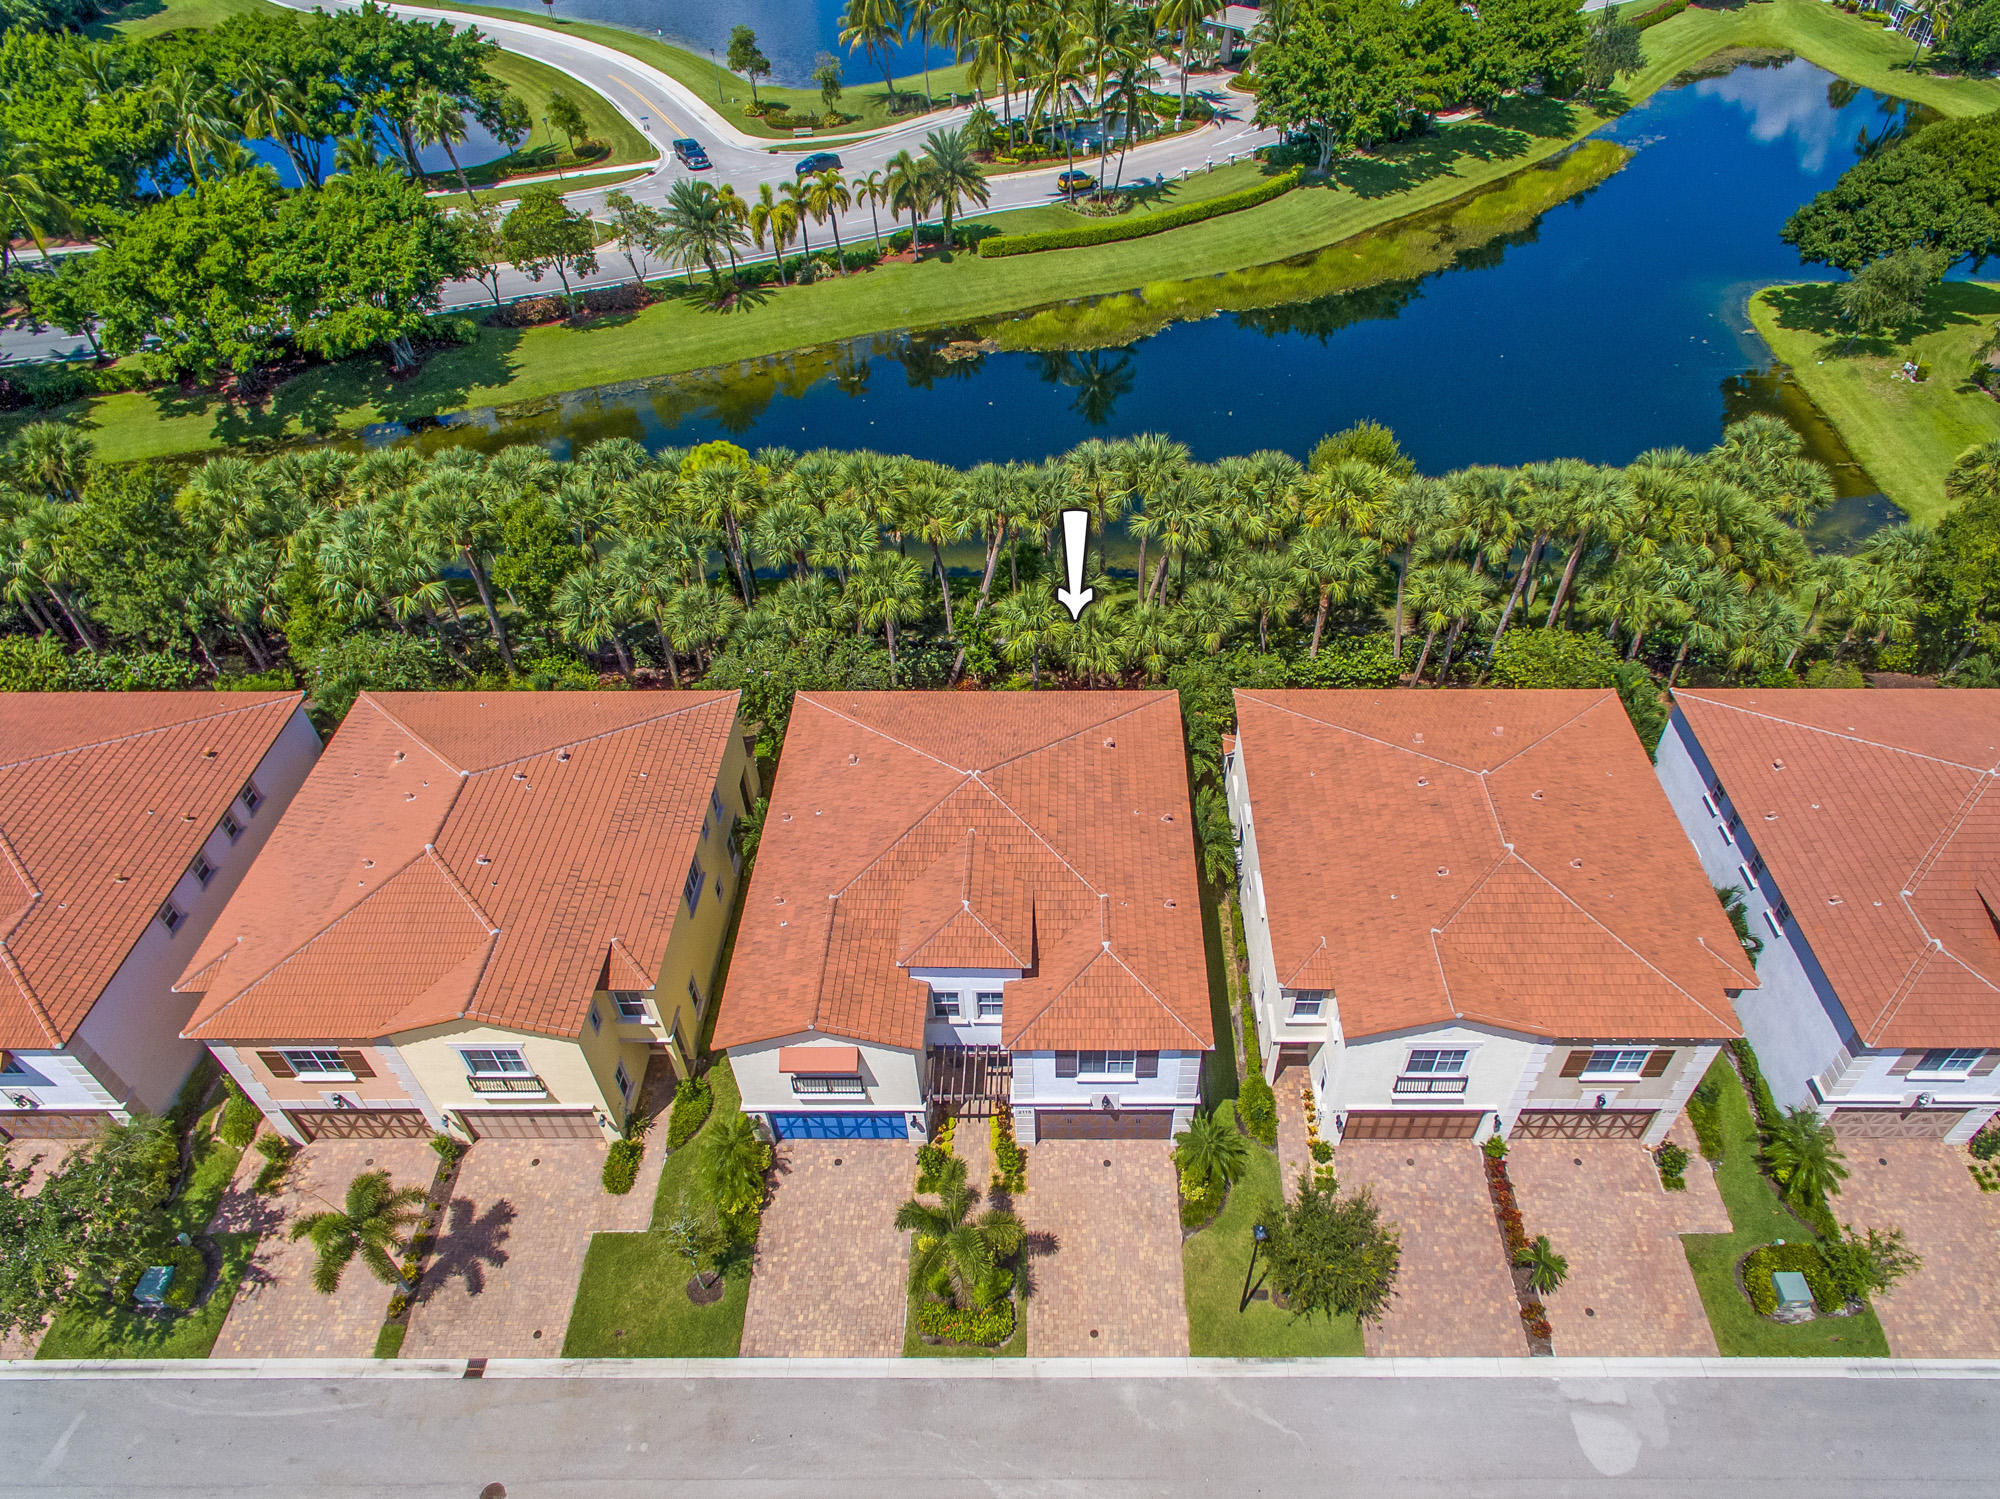 Stupendous Oakton Preserve Homes For Sale In West Palm Beach Fl Download Free Architecture Designs Scobabritishbridgeorg